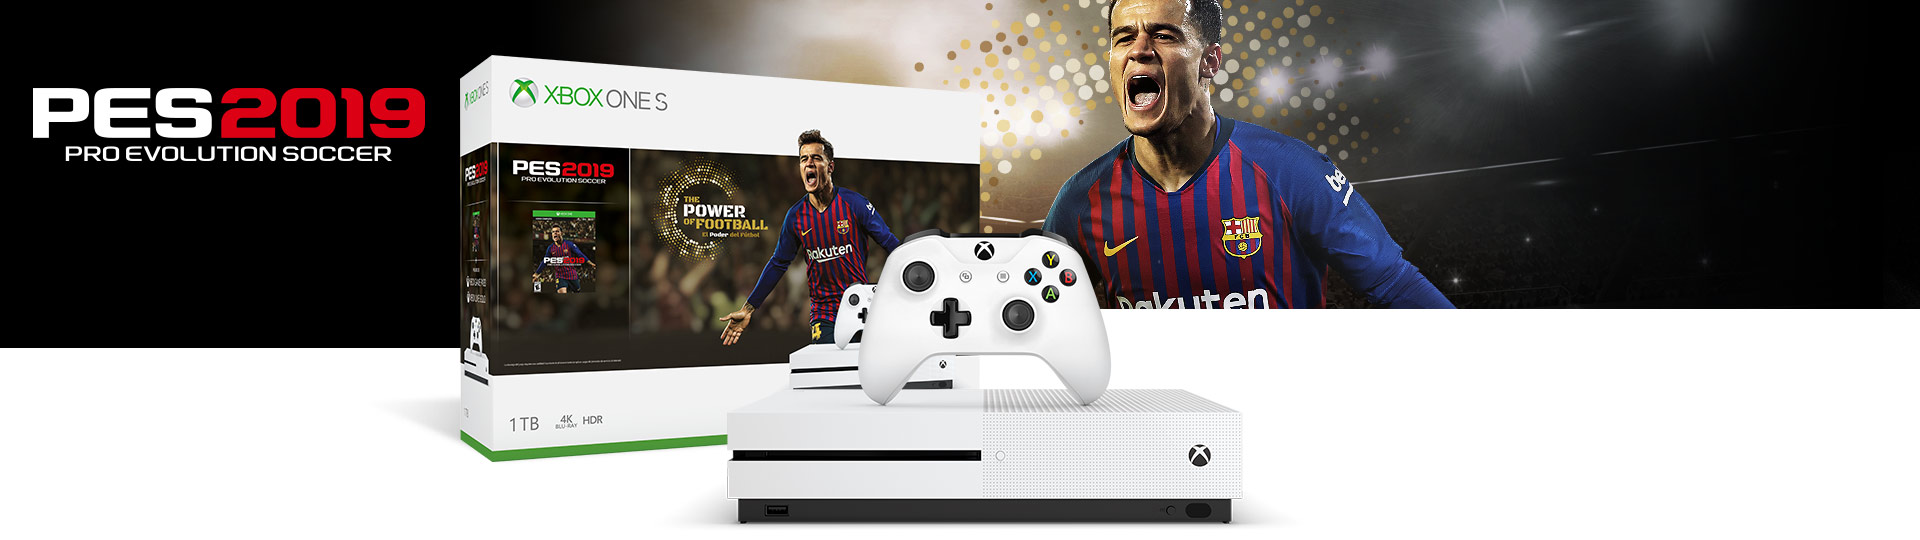 Front view of the Xbox One S PES 2019 1 terabyte bundle